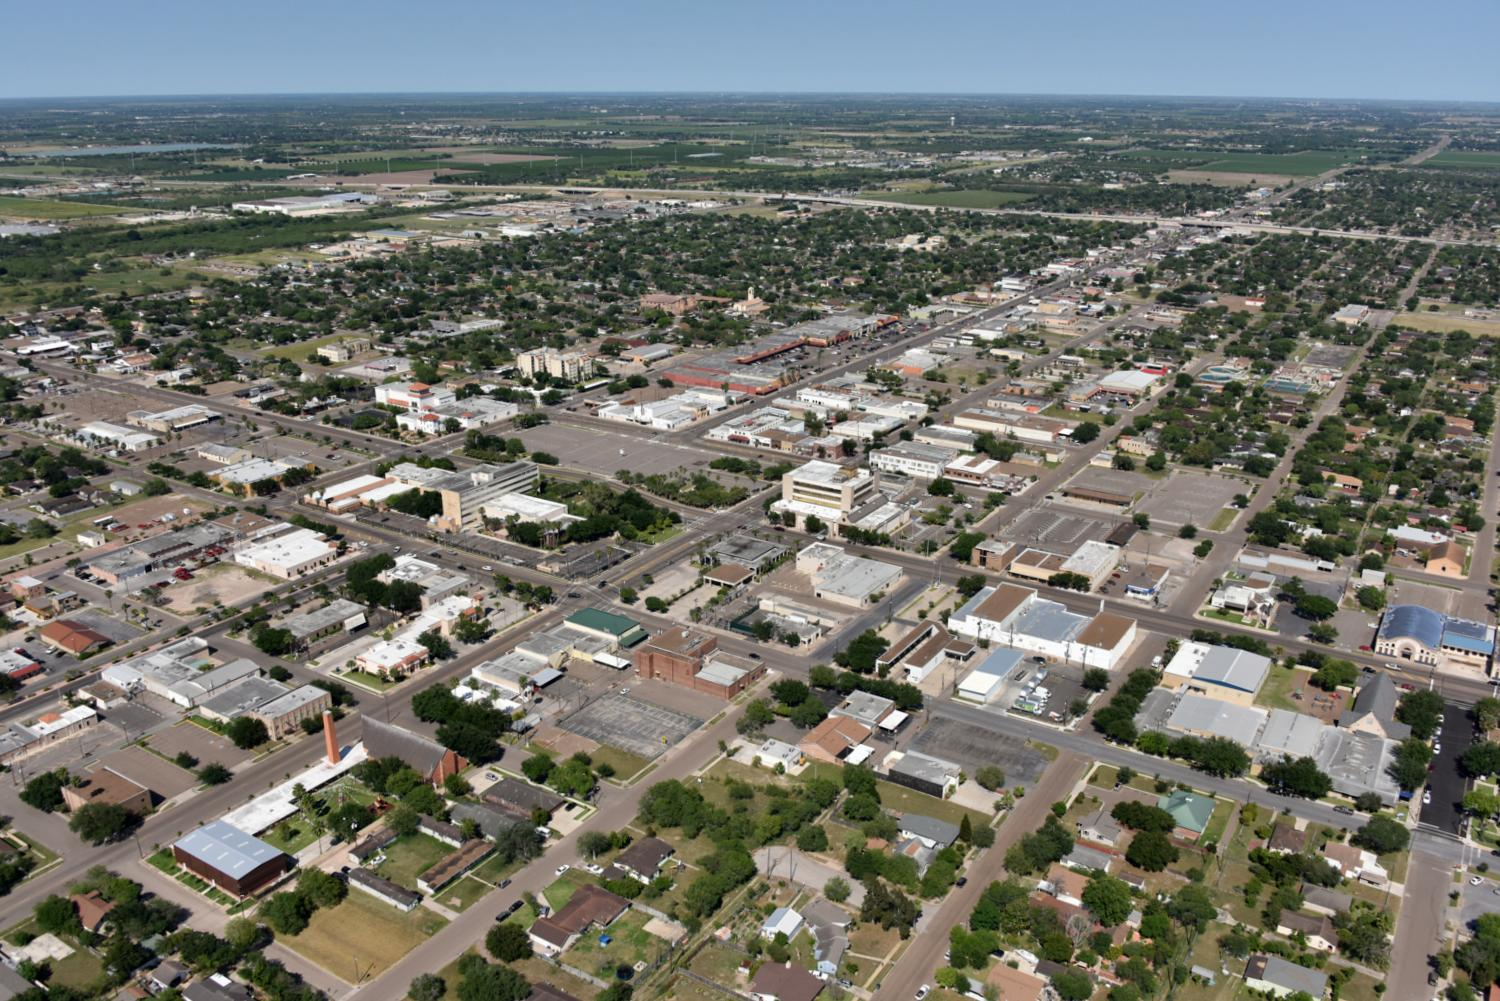 Downtown CBD - Edinburg Aerial Photographer - Aerial Drone Image - Aerial Drone Video - Edinburg, TX - Rio Grande Valley, Texas